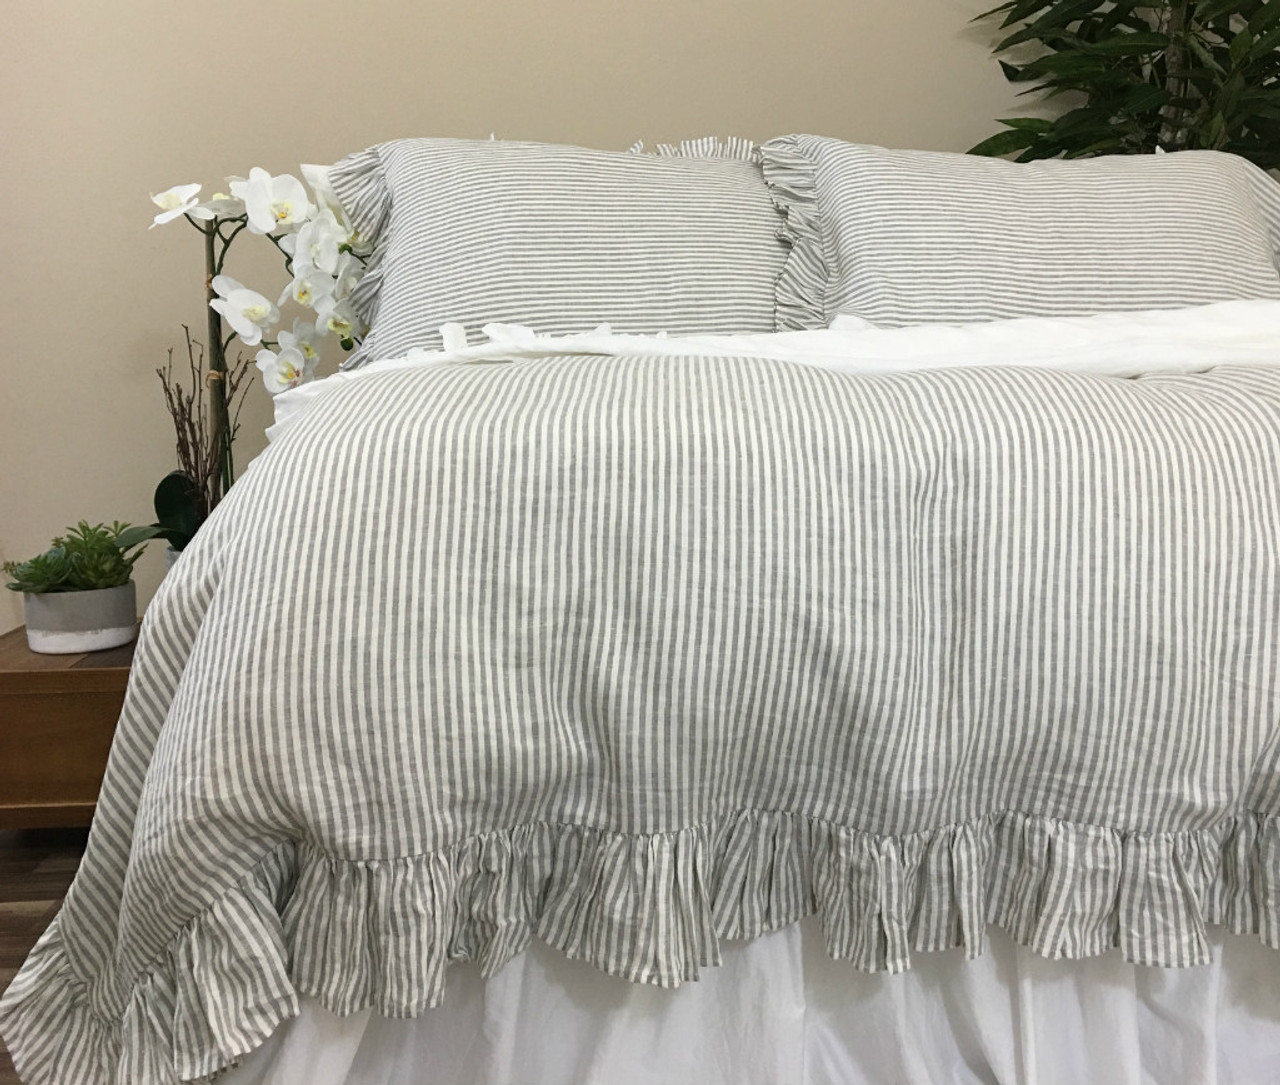 shabby ruffle bedskirt bedding chic cover eyelet duvet dust french white ivory set lace luxury